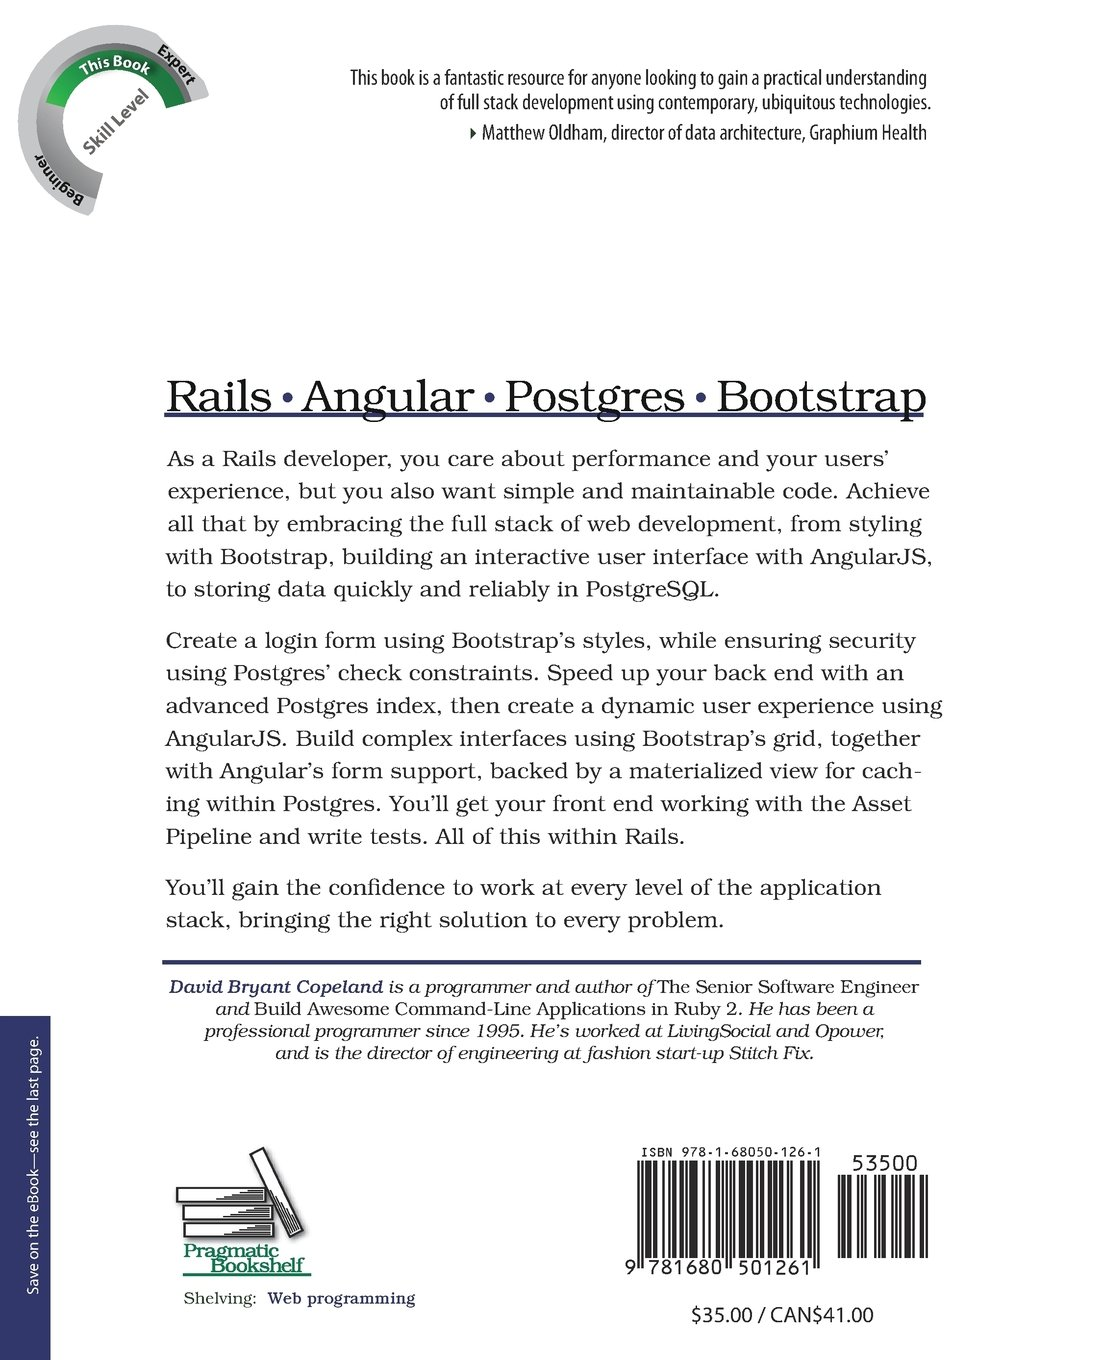 Rails Angular Postgres And Bootstrap Powerful Effective And